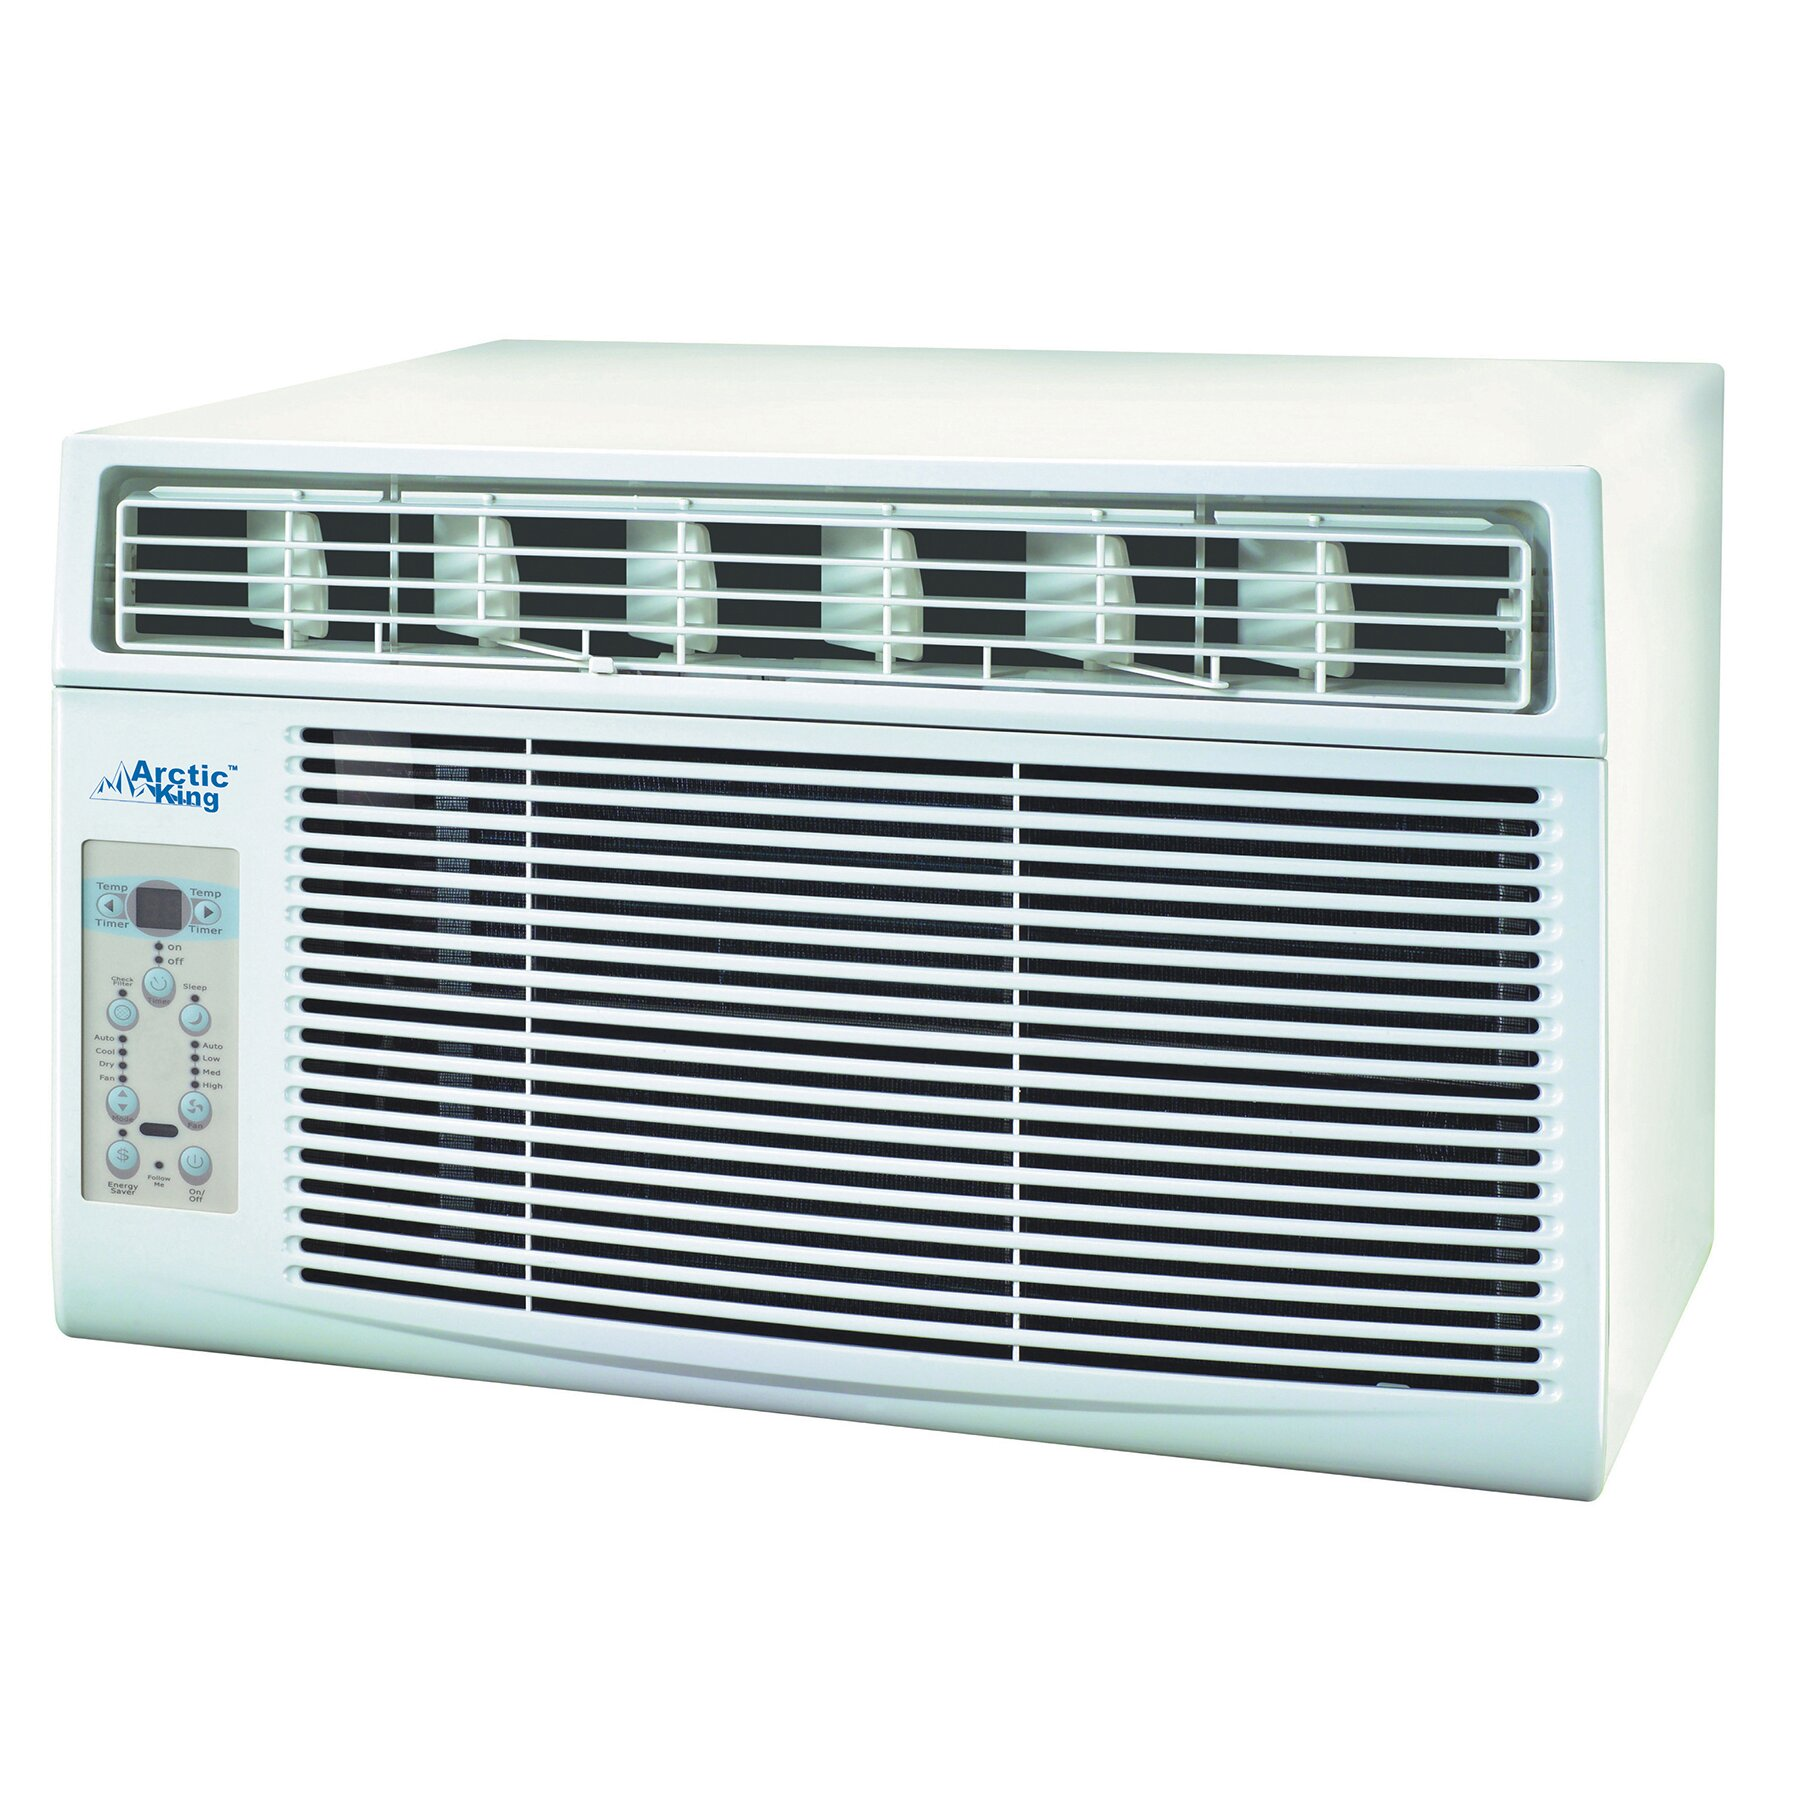 Arctic king 12 000 btu window air conditioner with remote for 12 x 19 window air conditioner